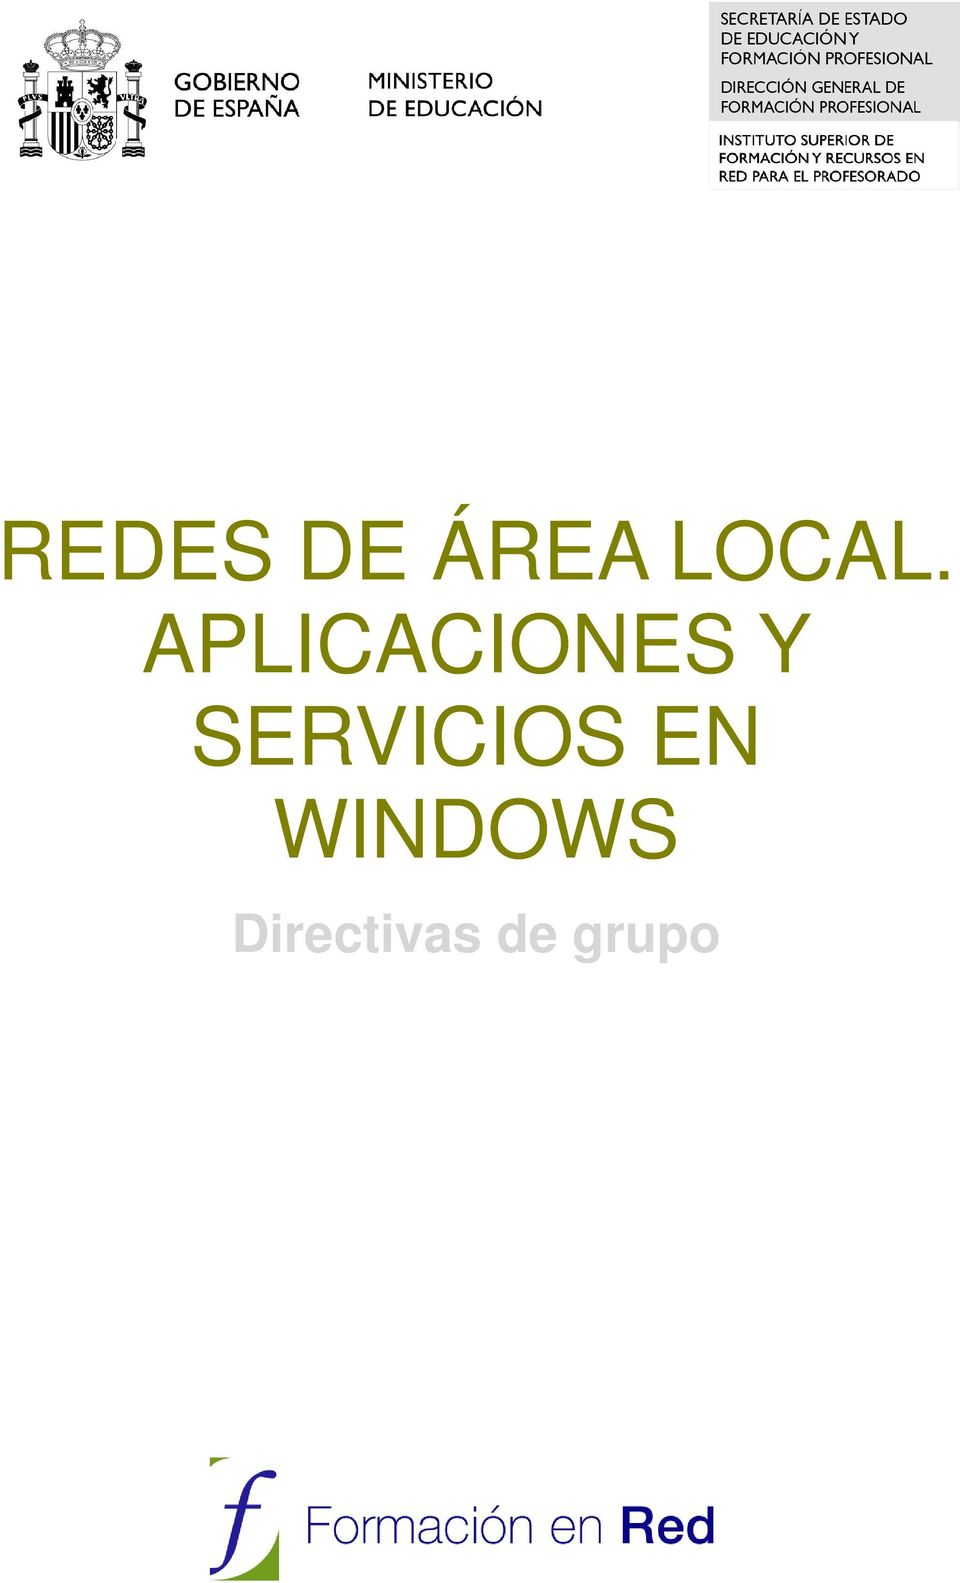 SERVICIOS EN WINDOWS